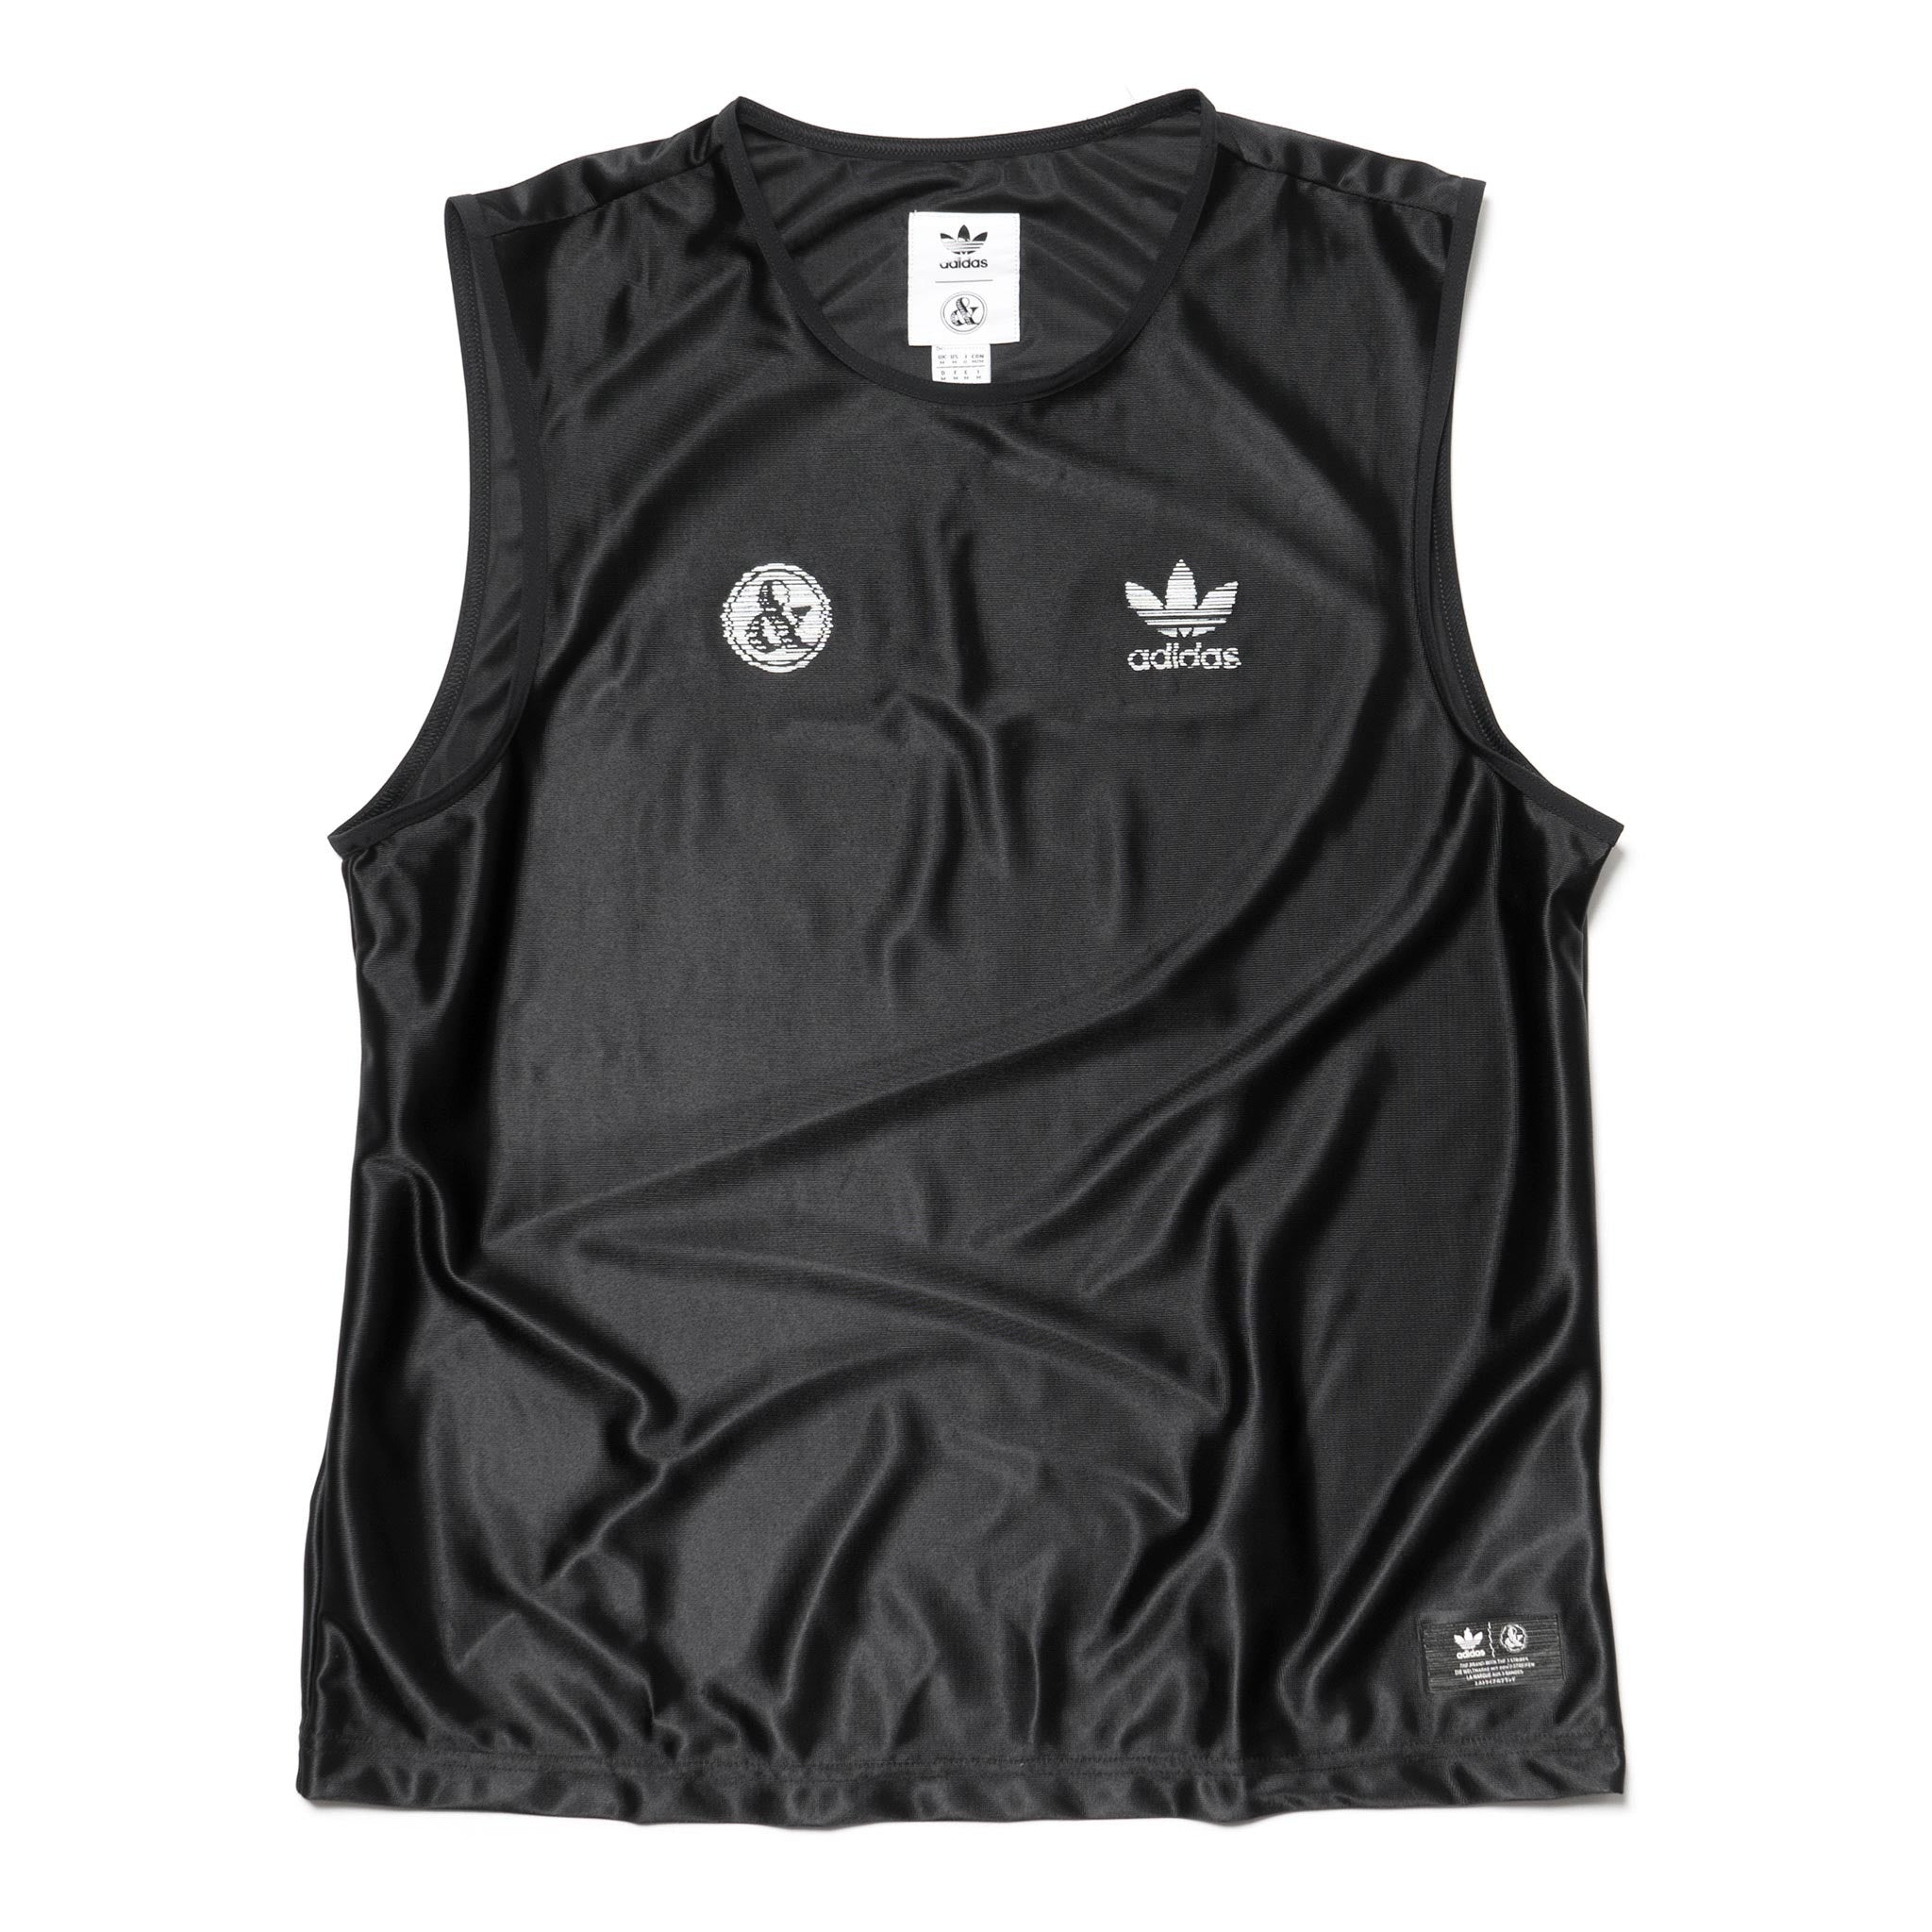 competitive price 4b81a fcd1b adidas-Originals-x-United-Arrows-And-Sons-UAS-Game-Bibs-BLACK-1.jpg